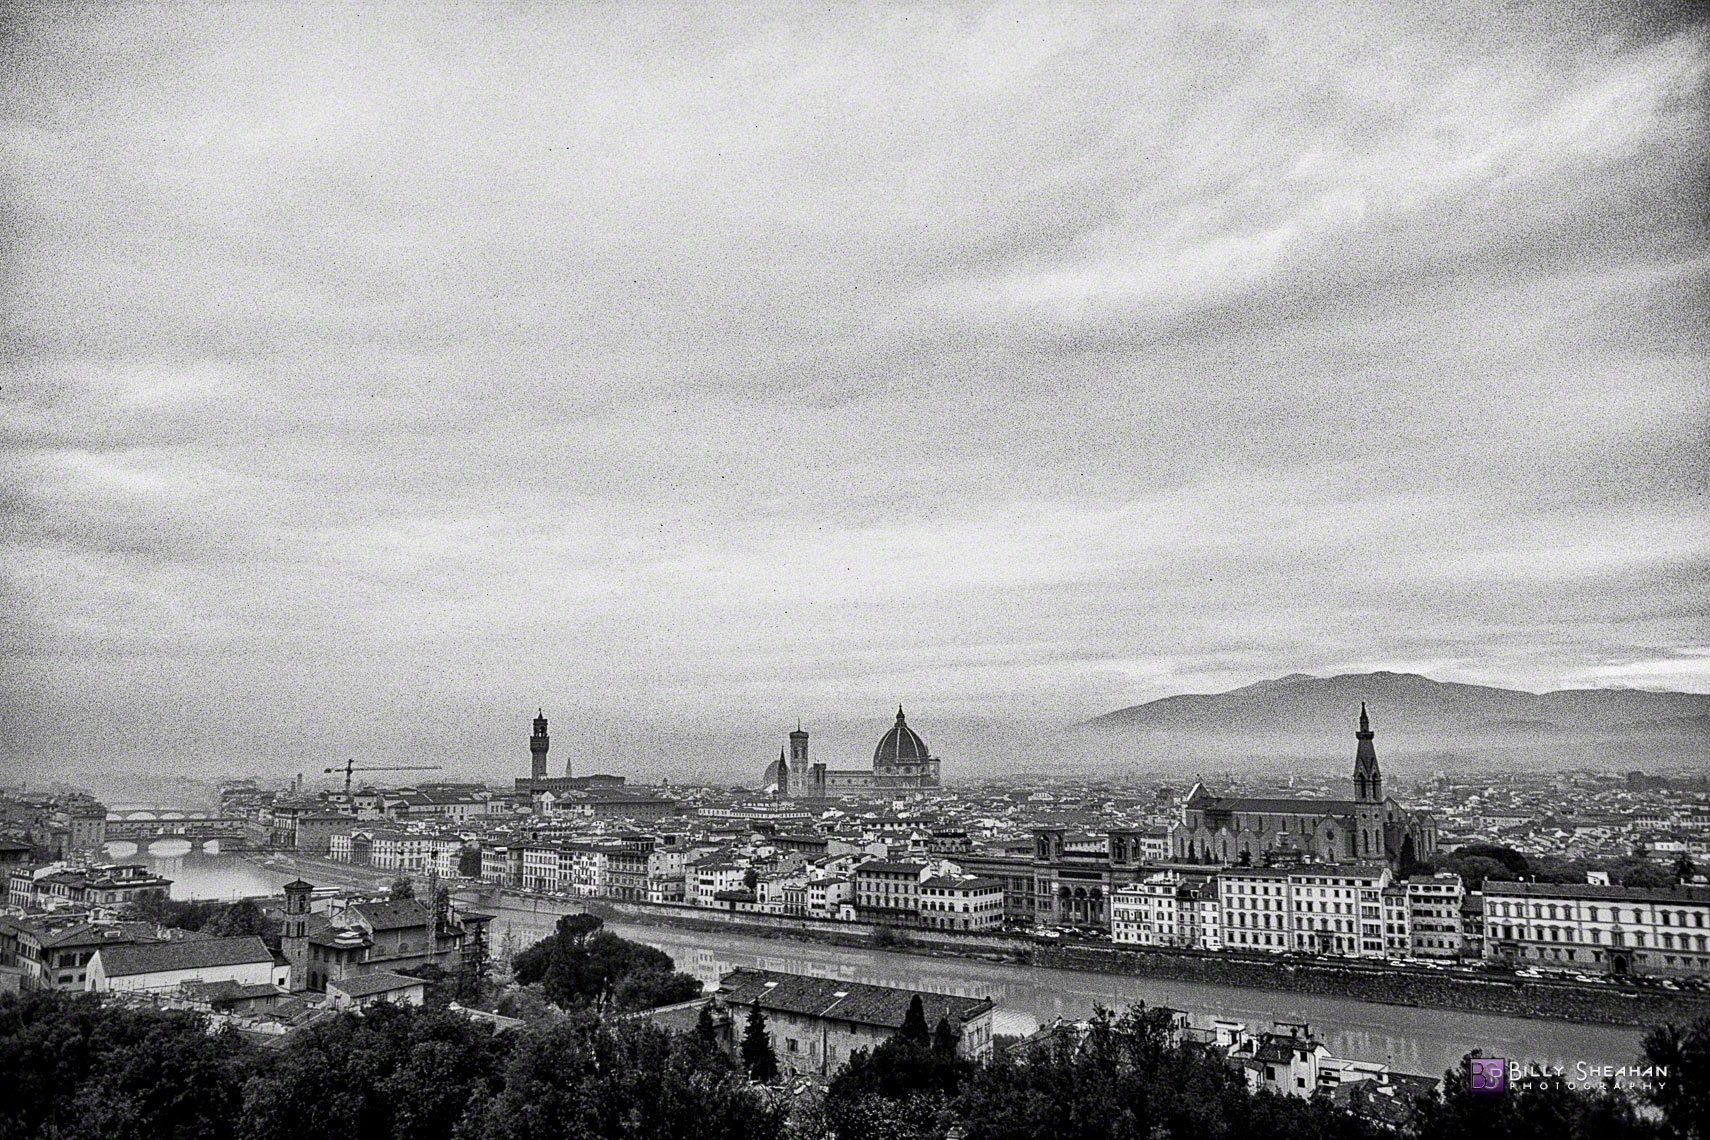 Florence__Italy_from_Michelangelo_Park_Italy-134_25_BW_D